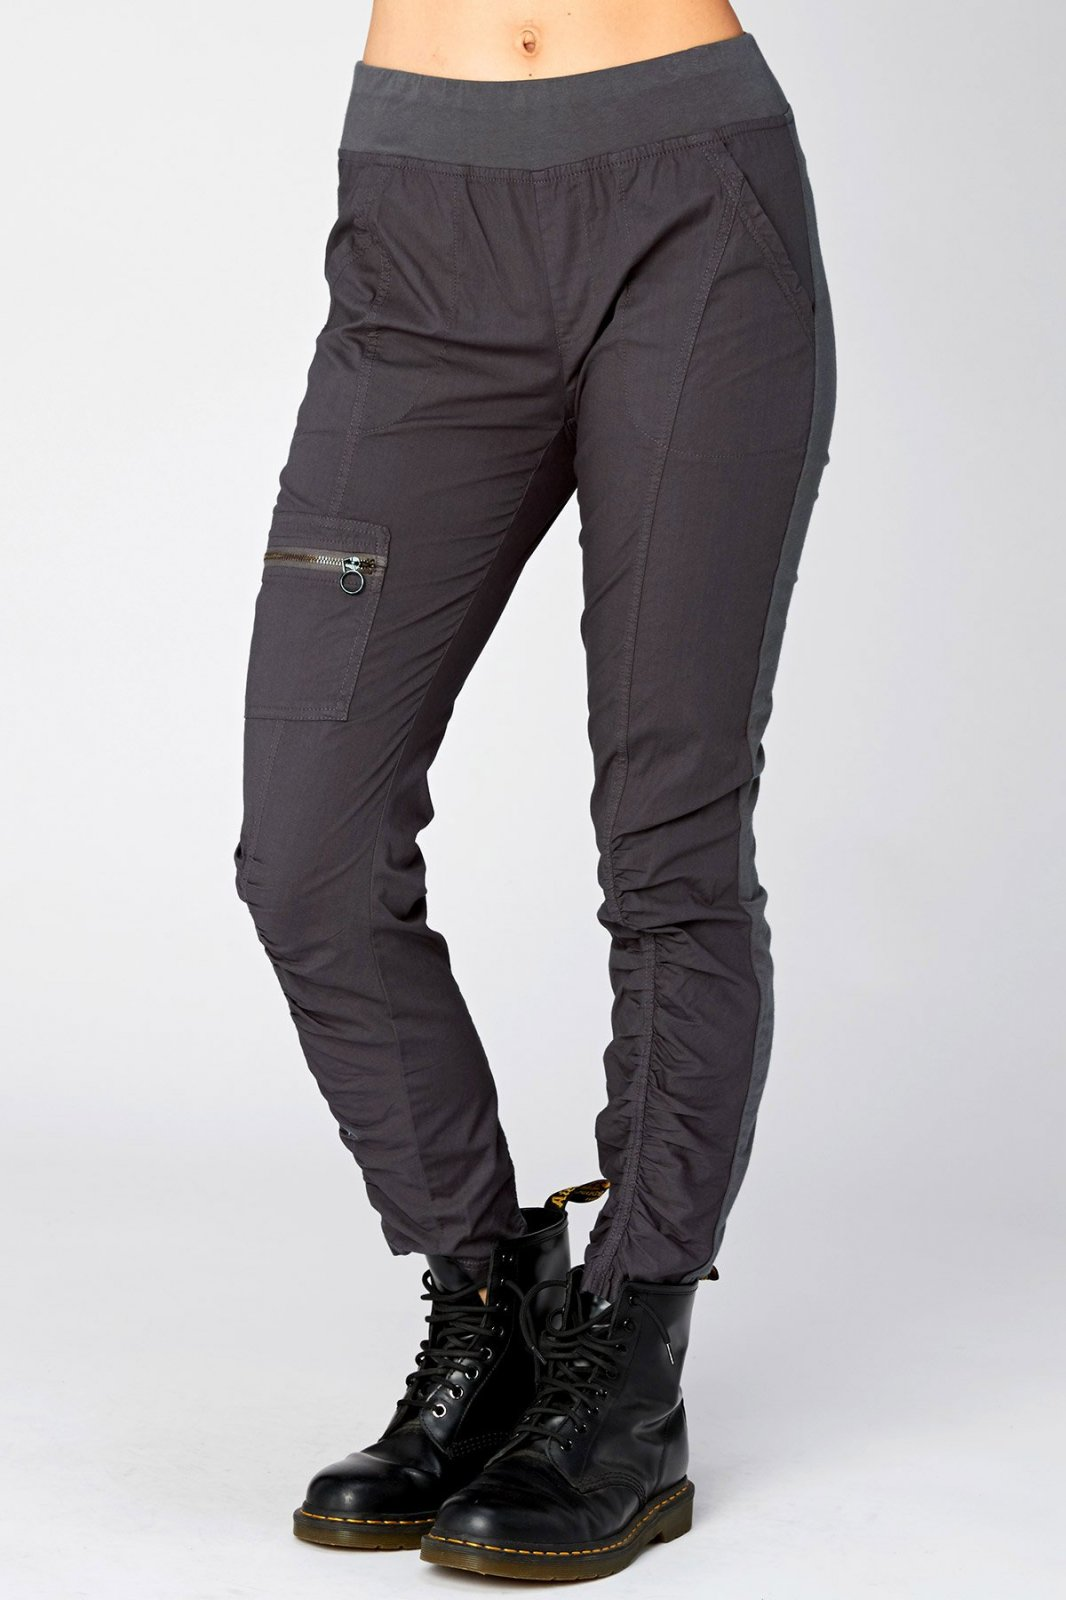 Ore Pigment Malanda Pant by Wearables by XCVI